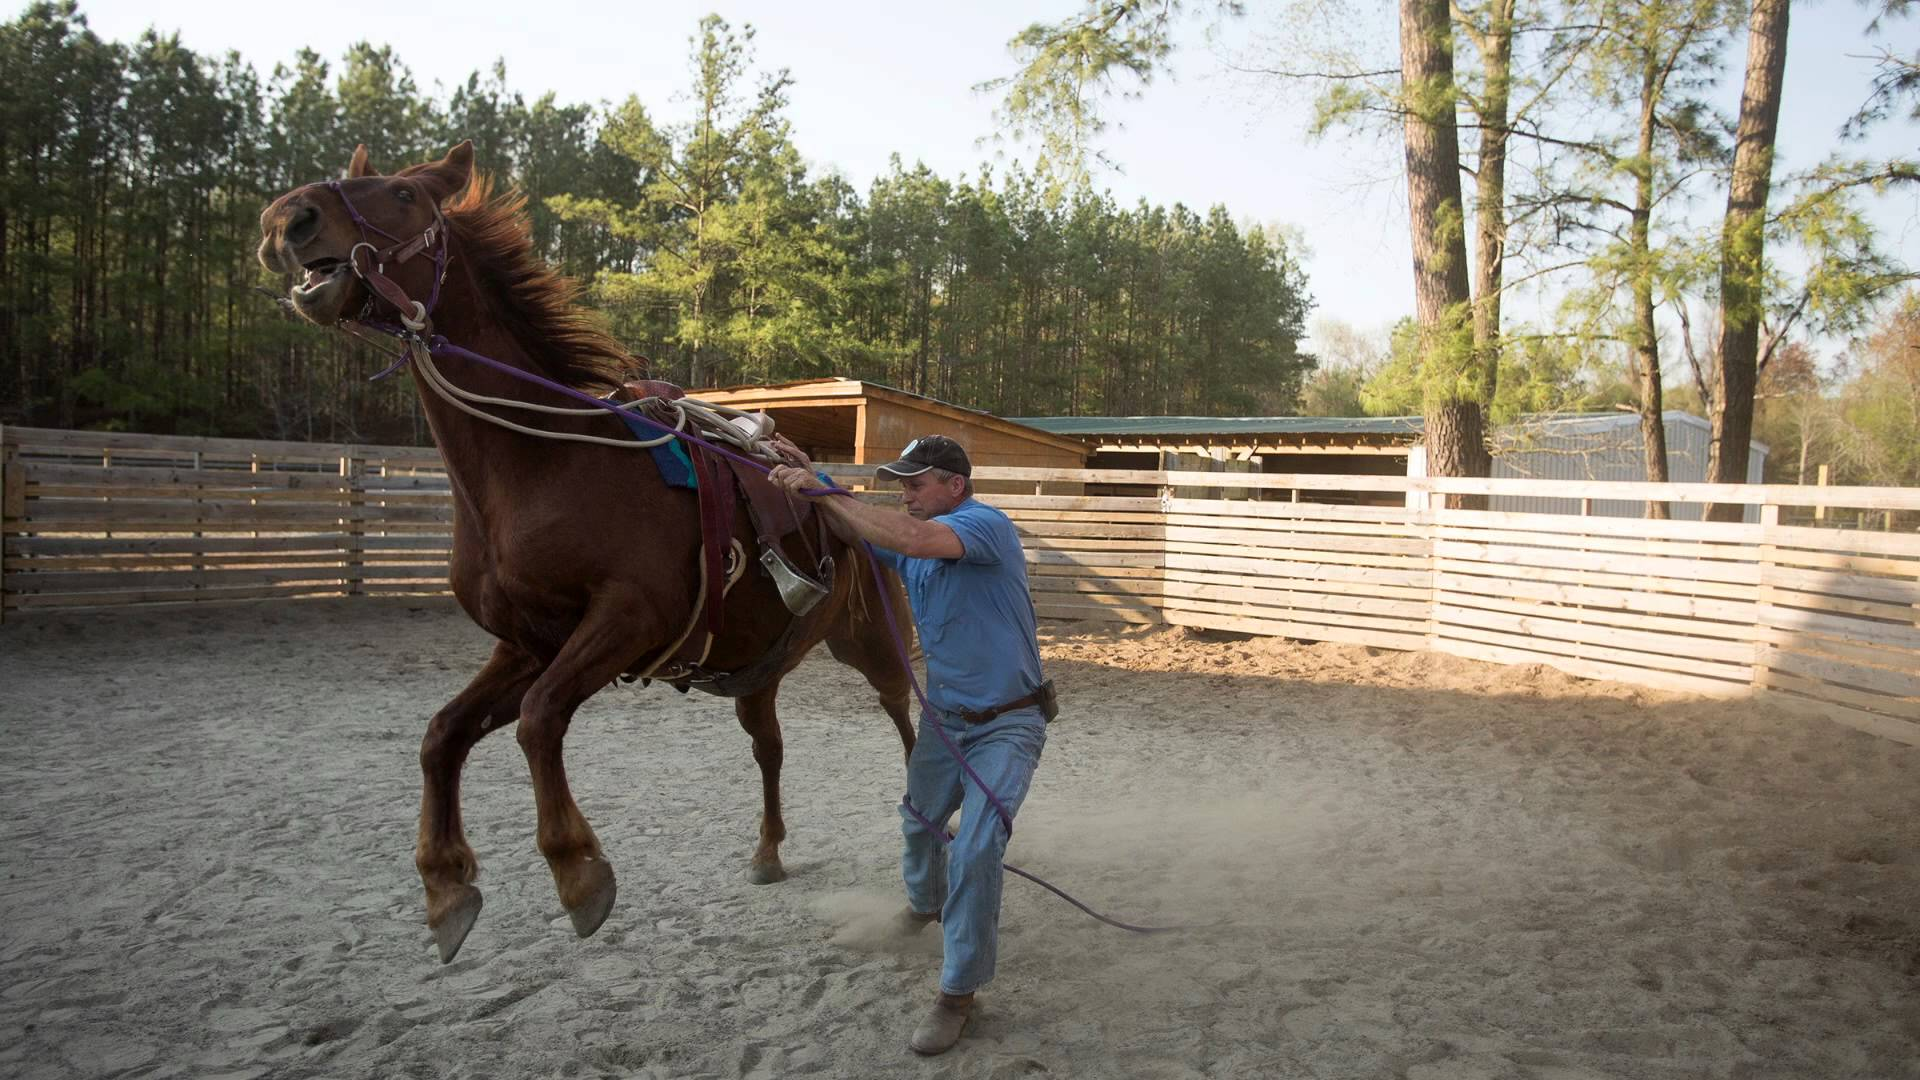 Taming a horse photo